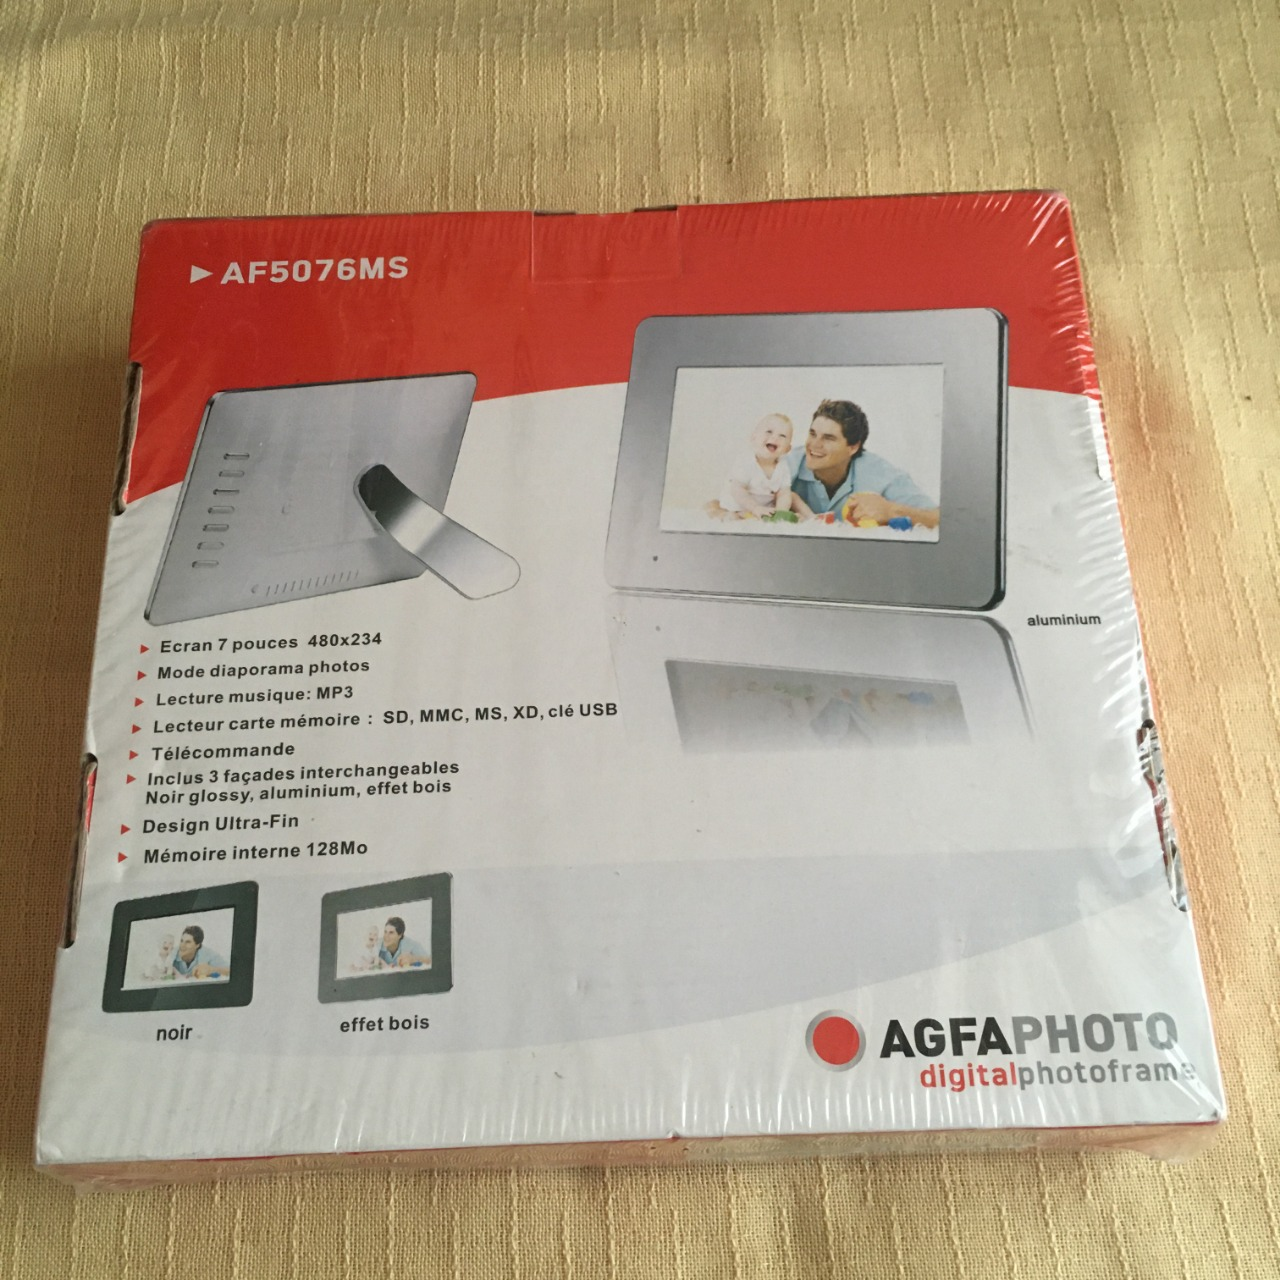 AGFA Photo Digital Photoframe - Brand New